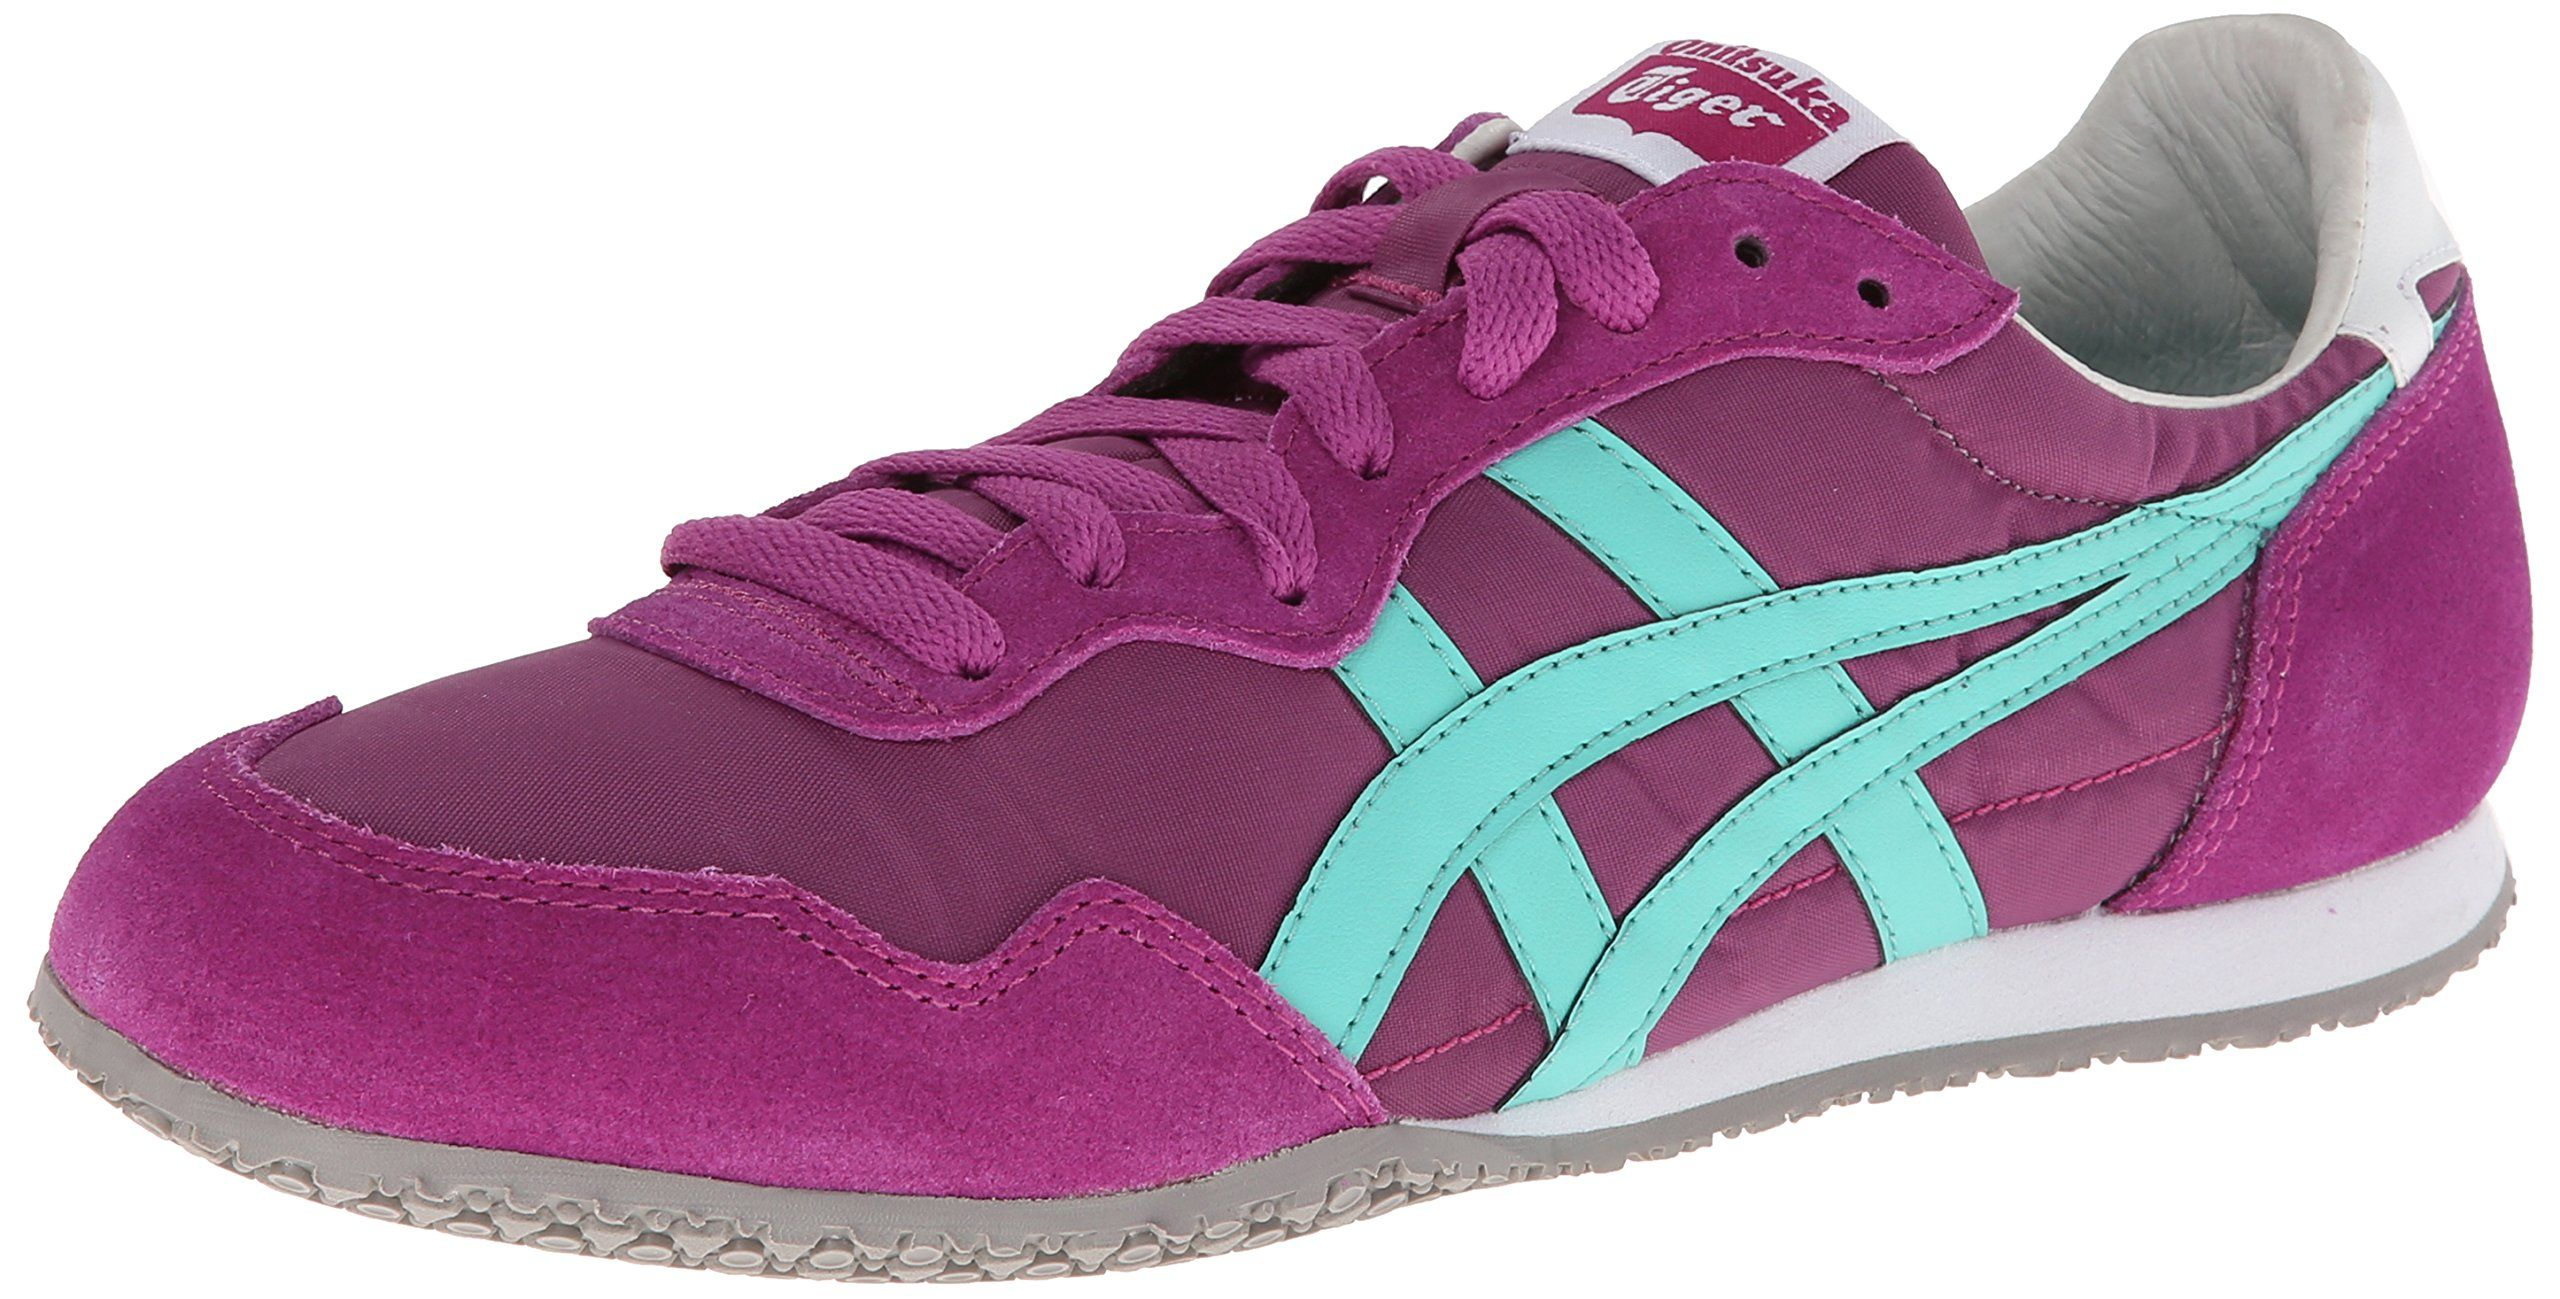 c4b7595943109 Amazon.com: Onitsuka Tiger Women's Serrano Sneaker $44 | Shoes ...